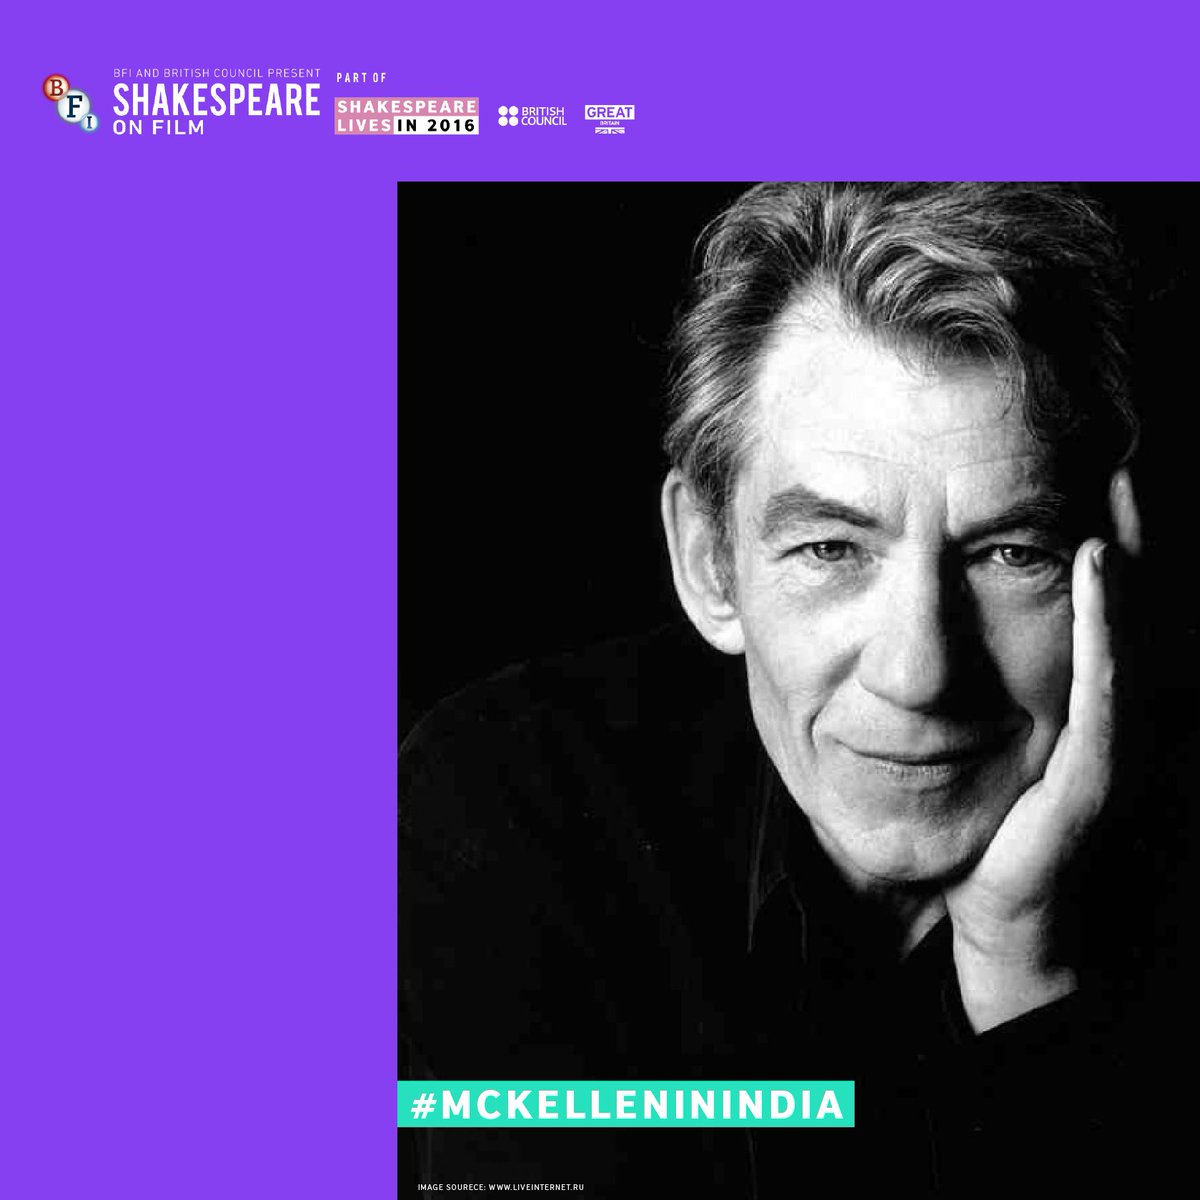 Block the dates! Catch Sir @IanMcKellen LIVE on twitter on 22 May, between 3-4pm. #McKelleninIndia #ShakespeareLives https://t.co/v2c898Q5mL